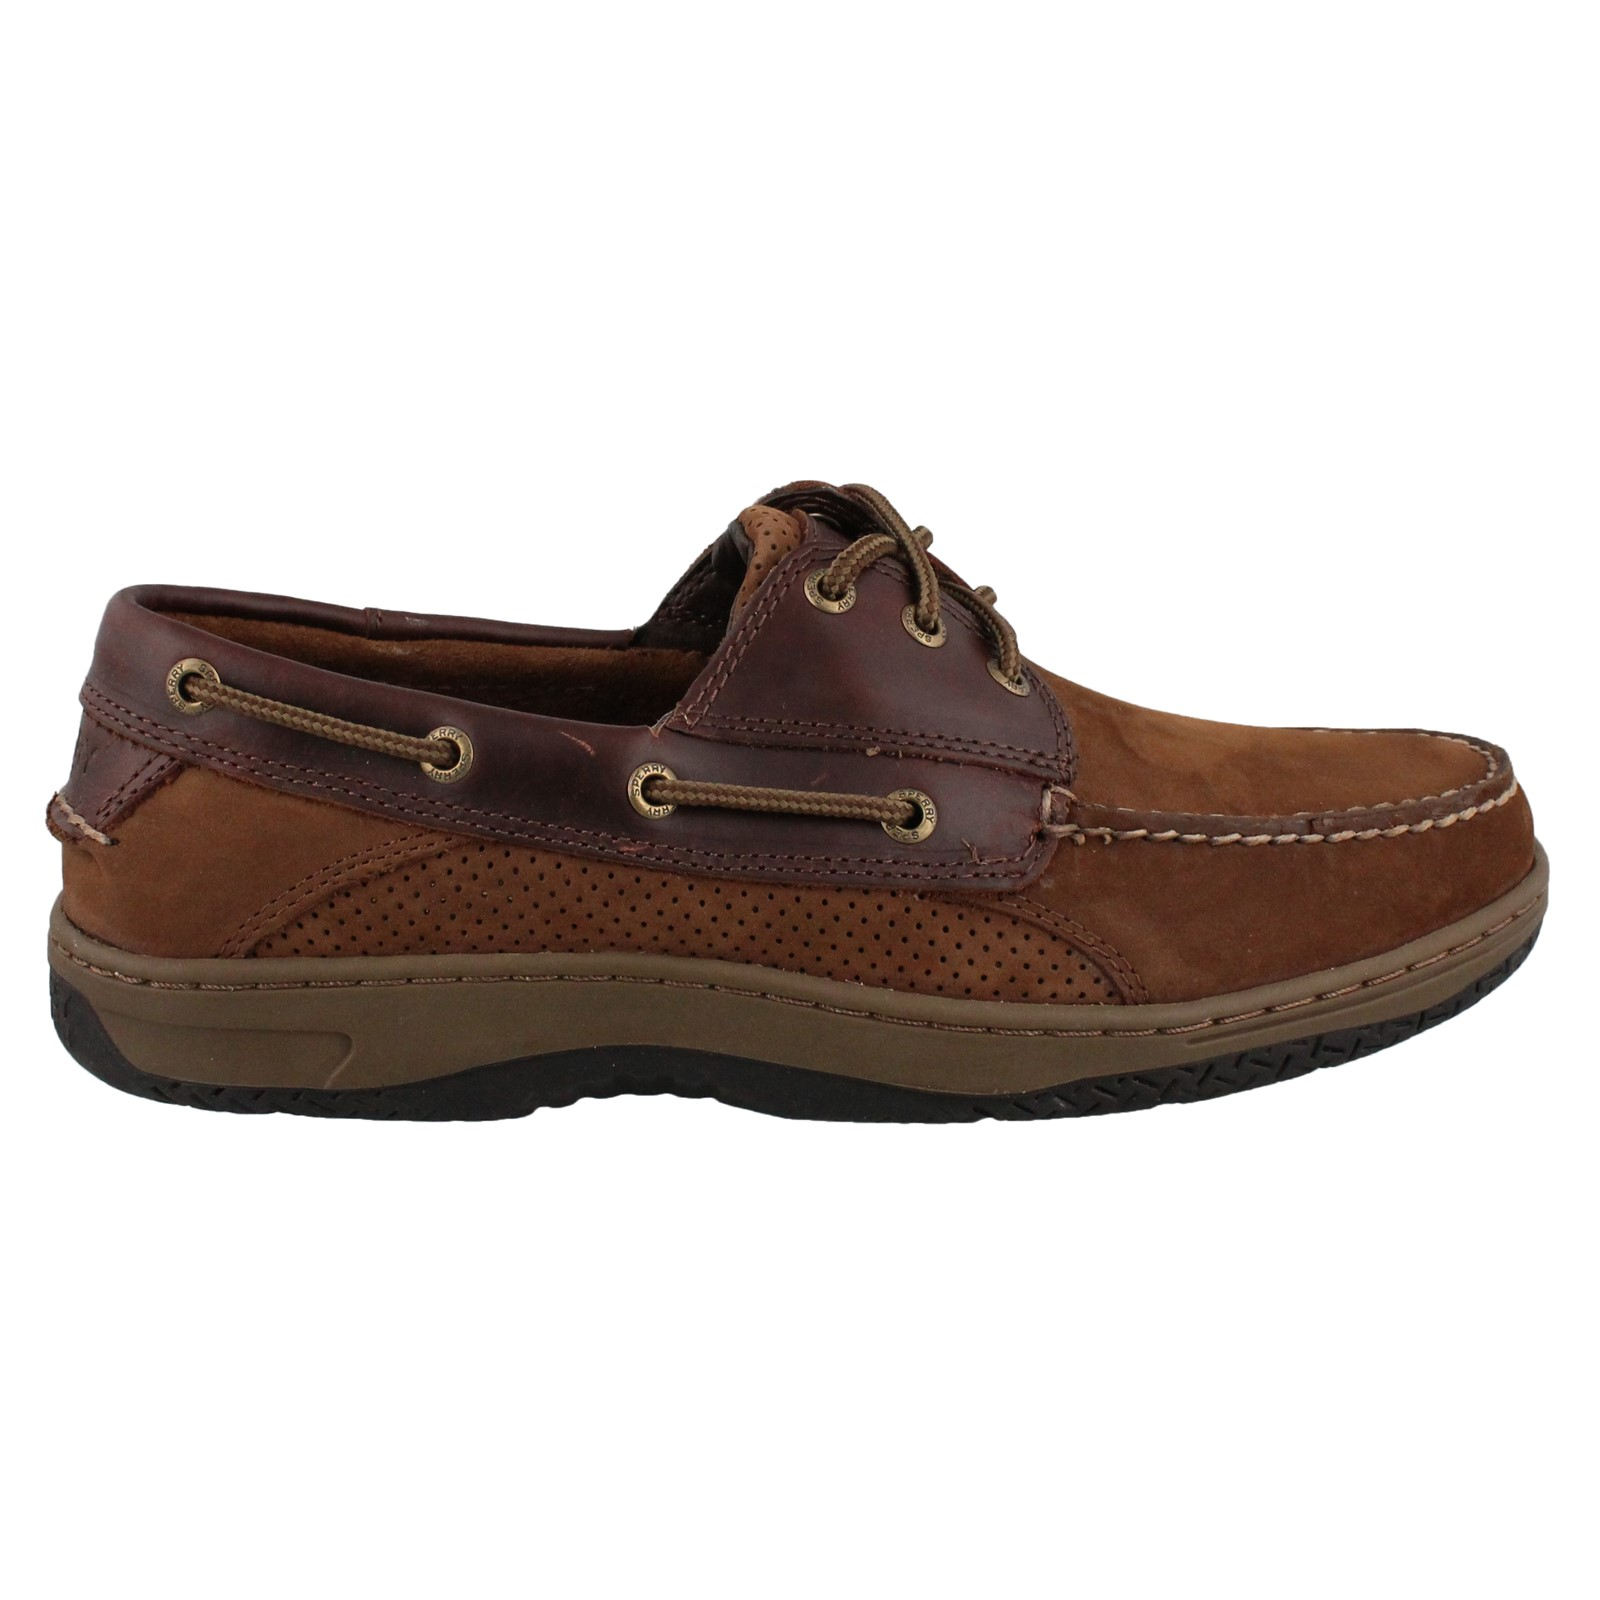 Men's Sperry Top-Sider, Billfish 3 Eye